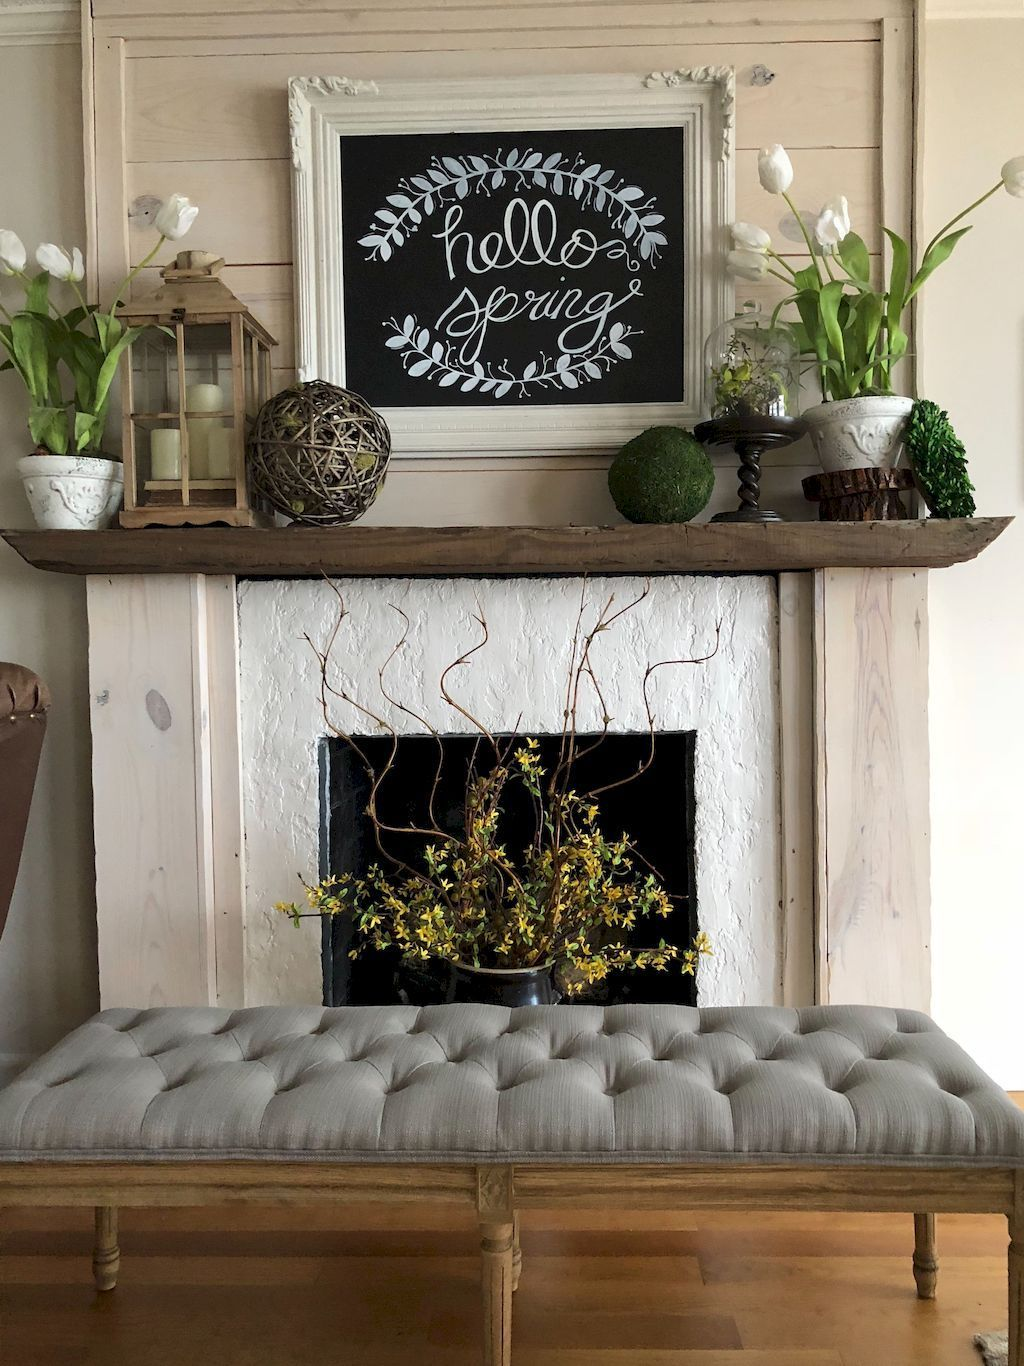 Stunning Fireplace Mantel Decor Ideas You Should Copy Now 20